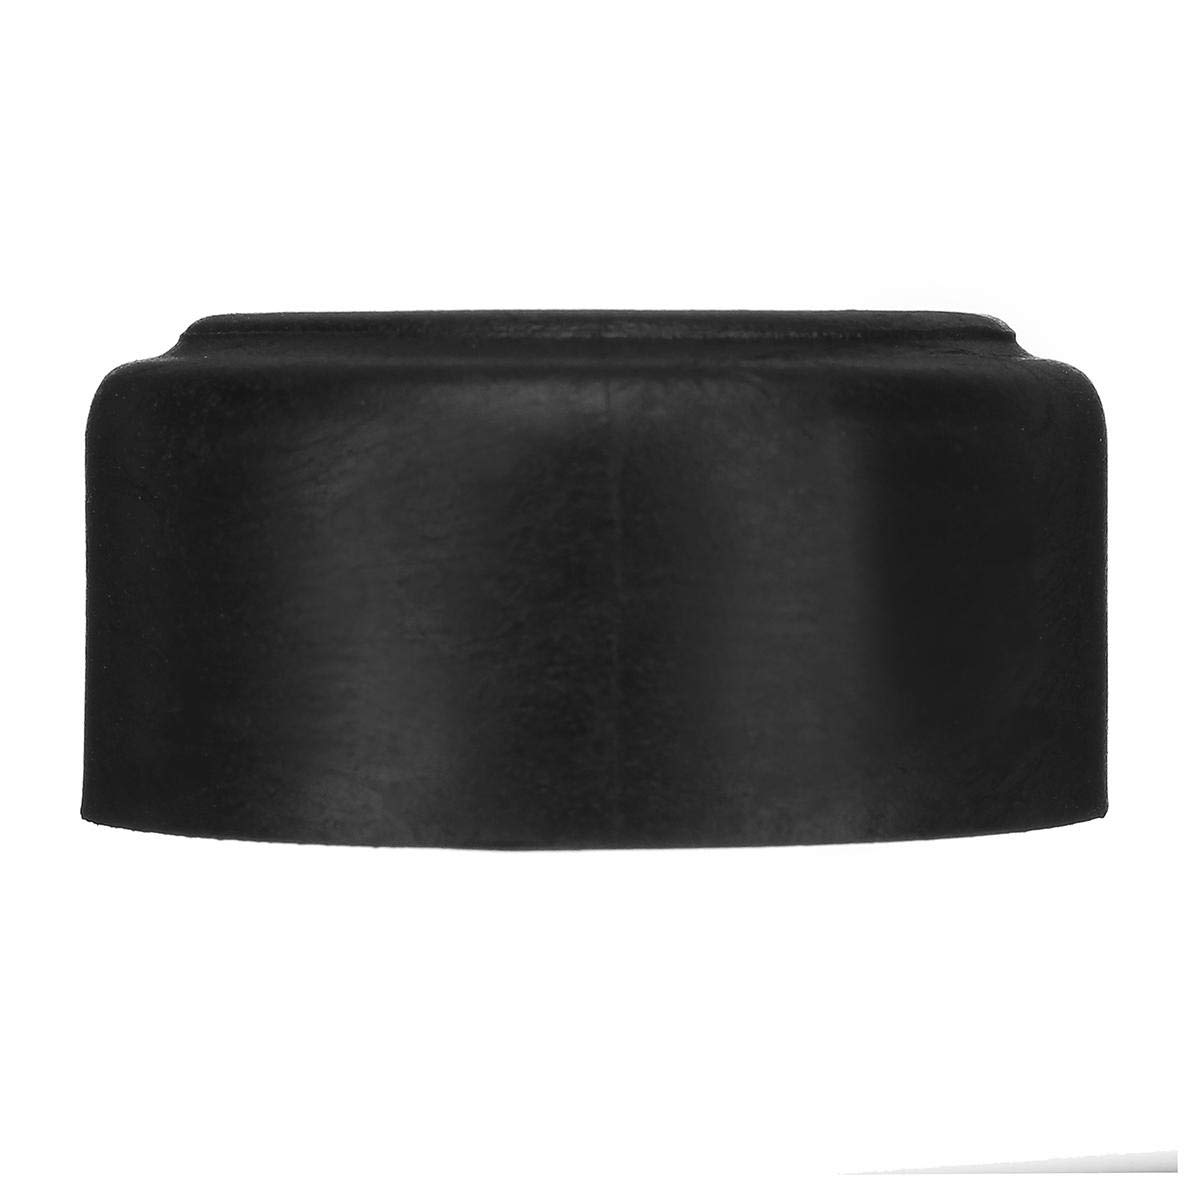 Pair Vintage Fuel Gas Tank Cushion Rubber Cushion Mount For CG125 CT SL TL 2 X Fuel Gas Tank Rubber Cushion Motorcycle Body /& Frame